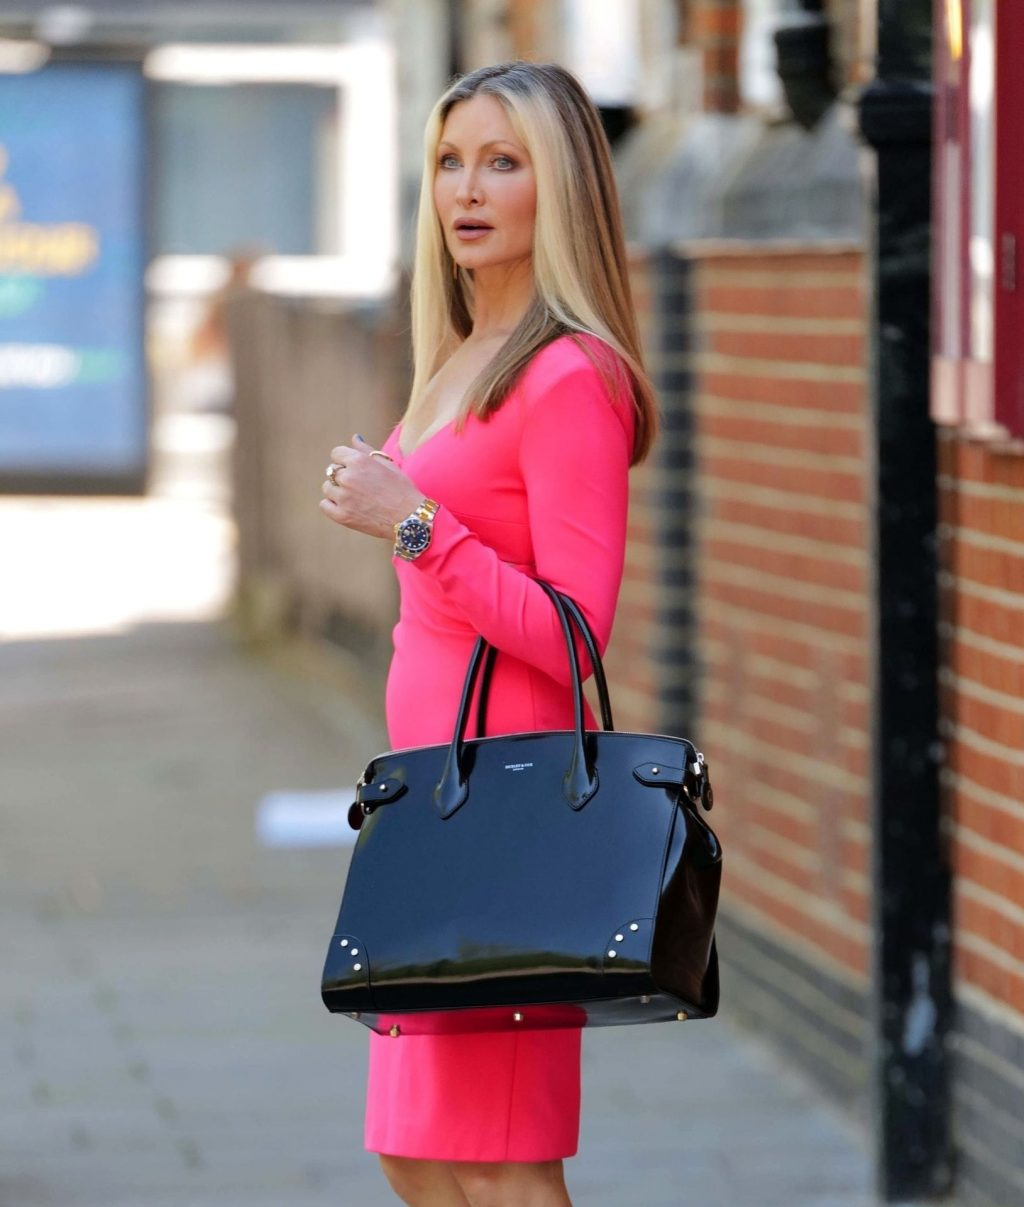 Caprice Wears a Sexy Pink Dress in Central London (8 Photos)